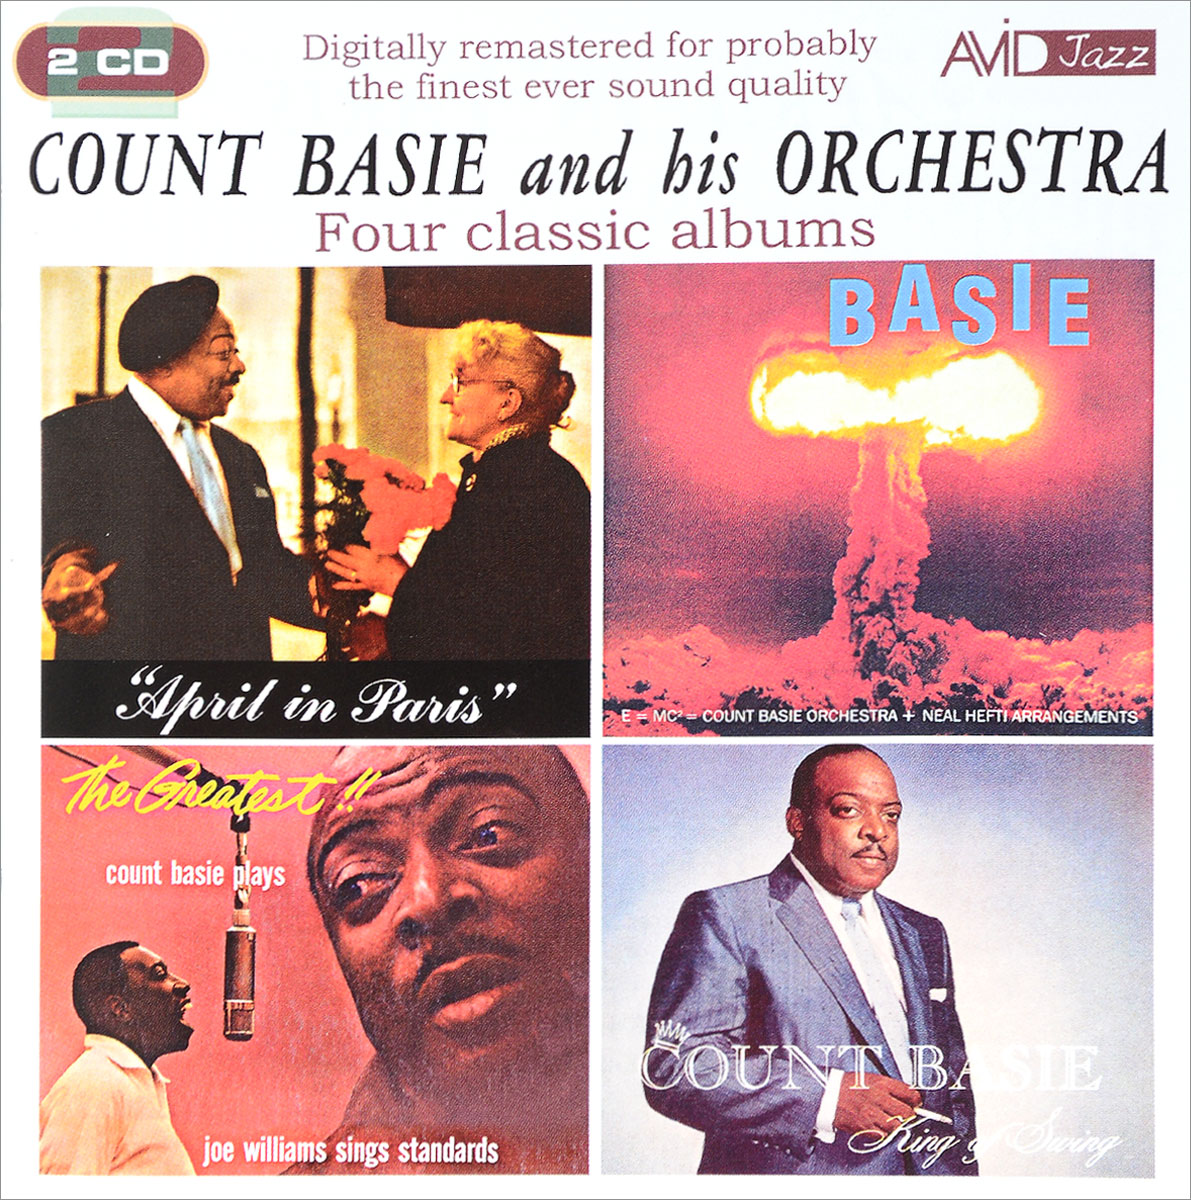 The Count Basie Orchestra,Каунт Бэйси Avid Jazz. Count Basie And His Orchestra. Four Classic Albums (2 CD) посвящение каунту бэйси